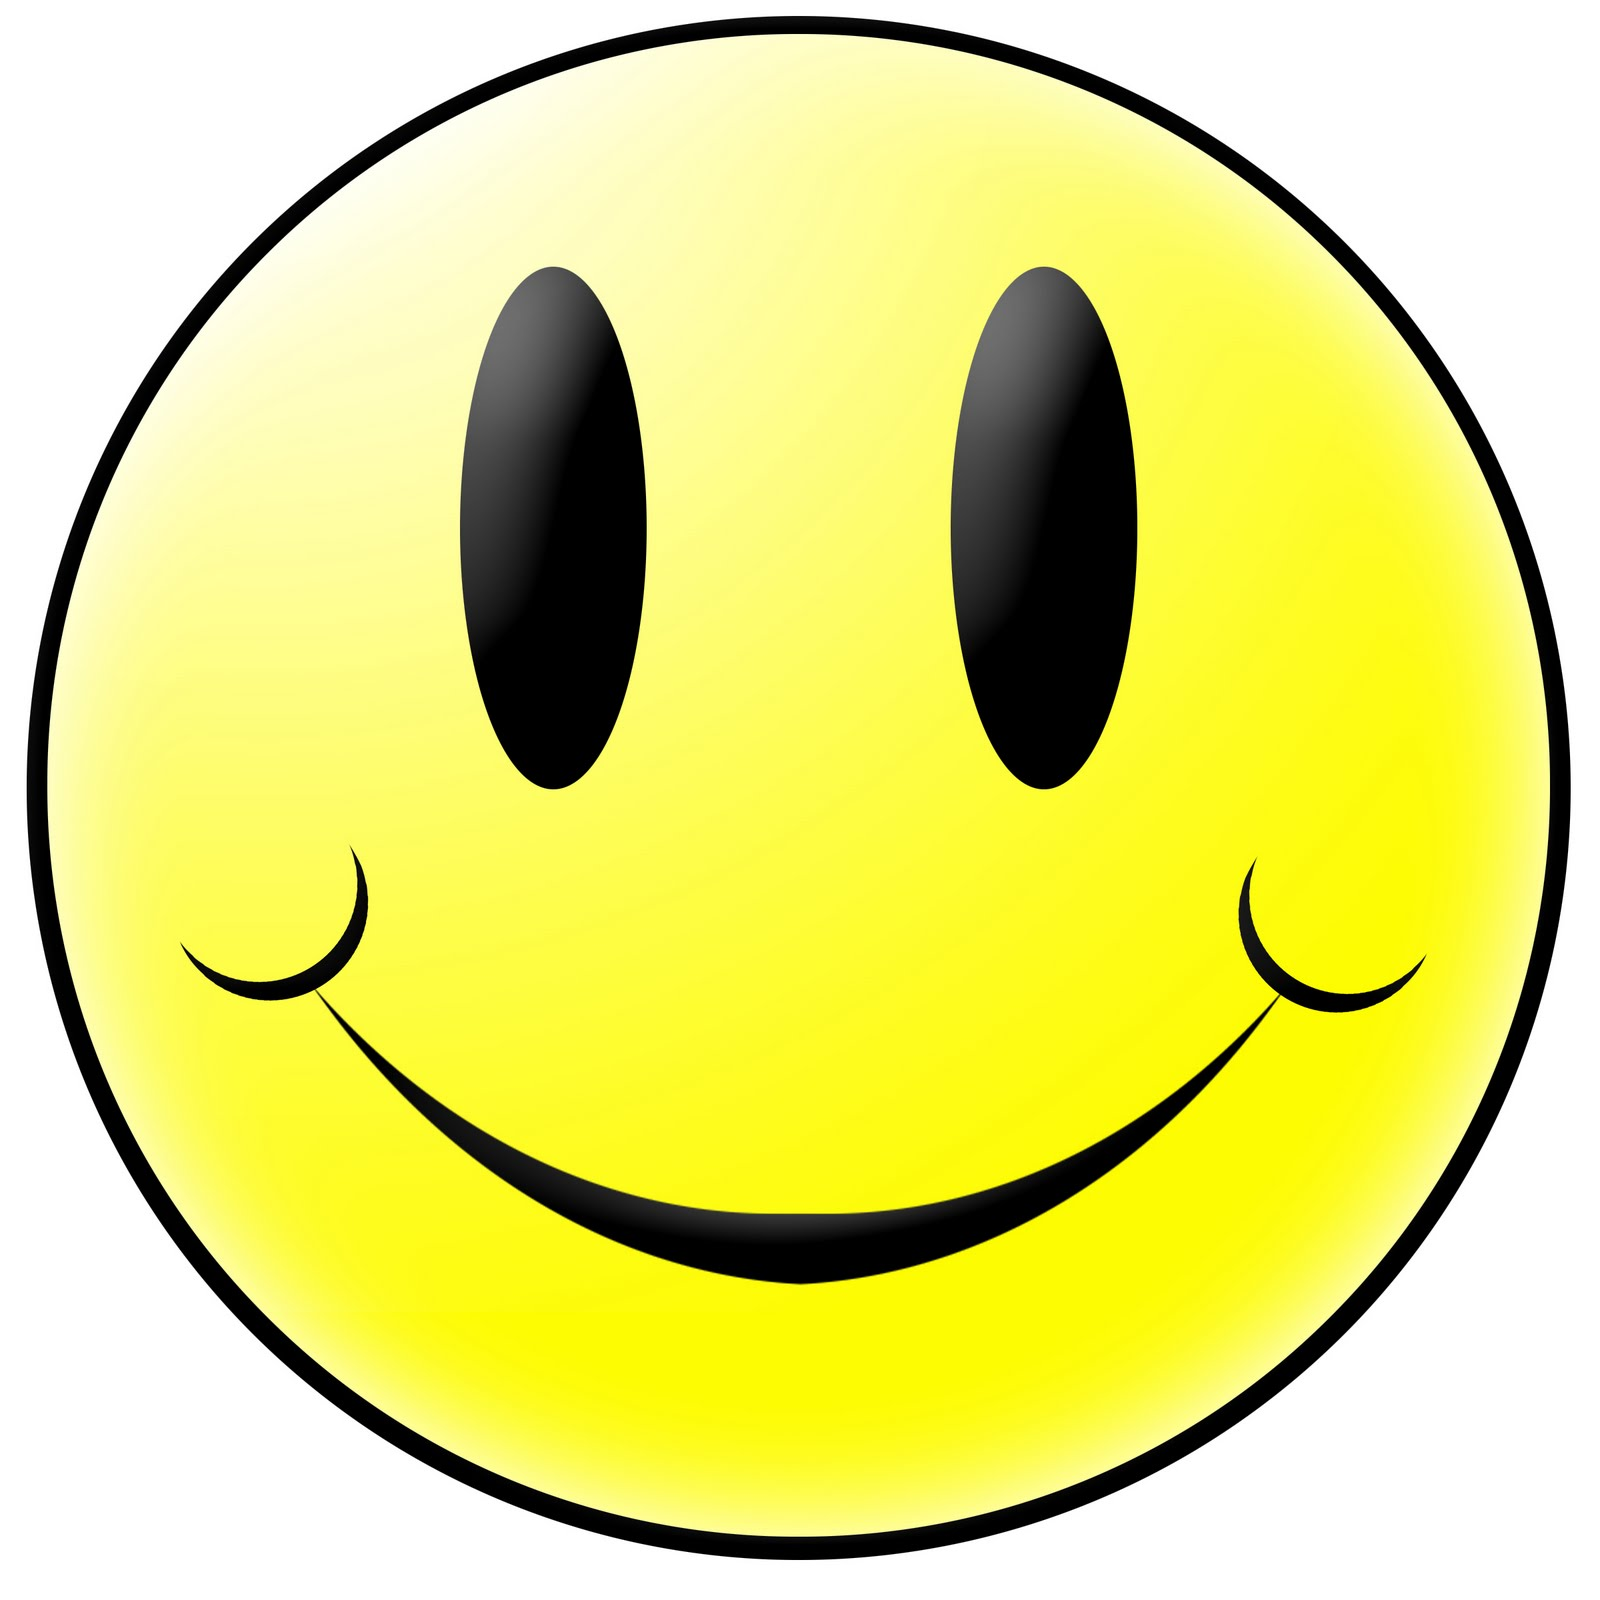 Cartoon smiley faces clipart jpg library Free Smiley Cartoon Faces, Download Free Clip Art, Free Clip Art on ... jpg library